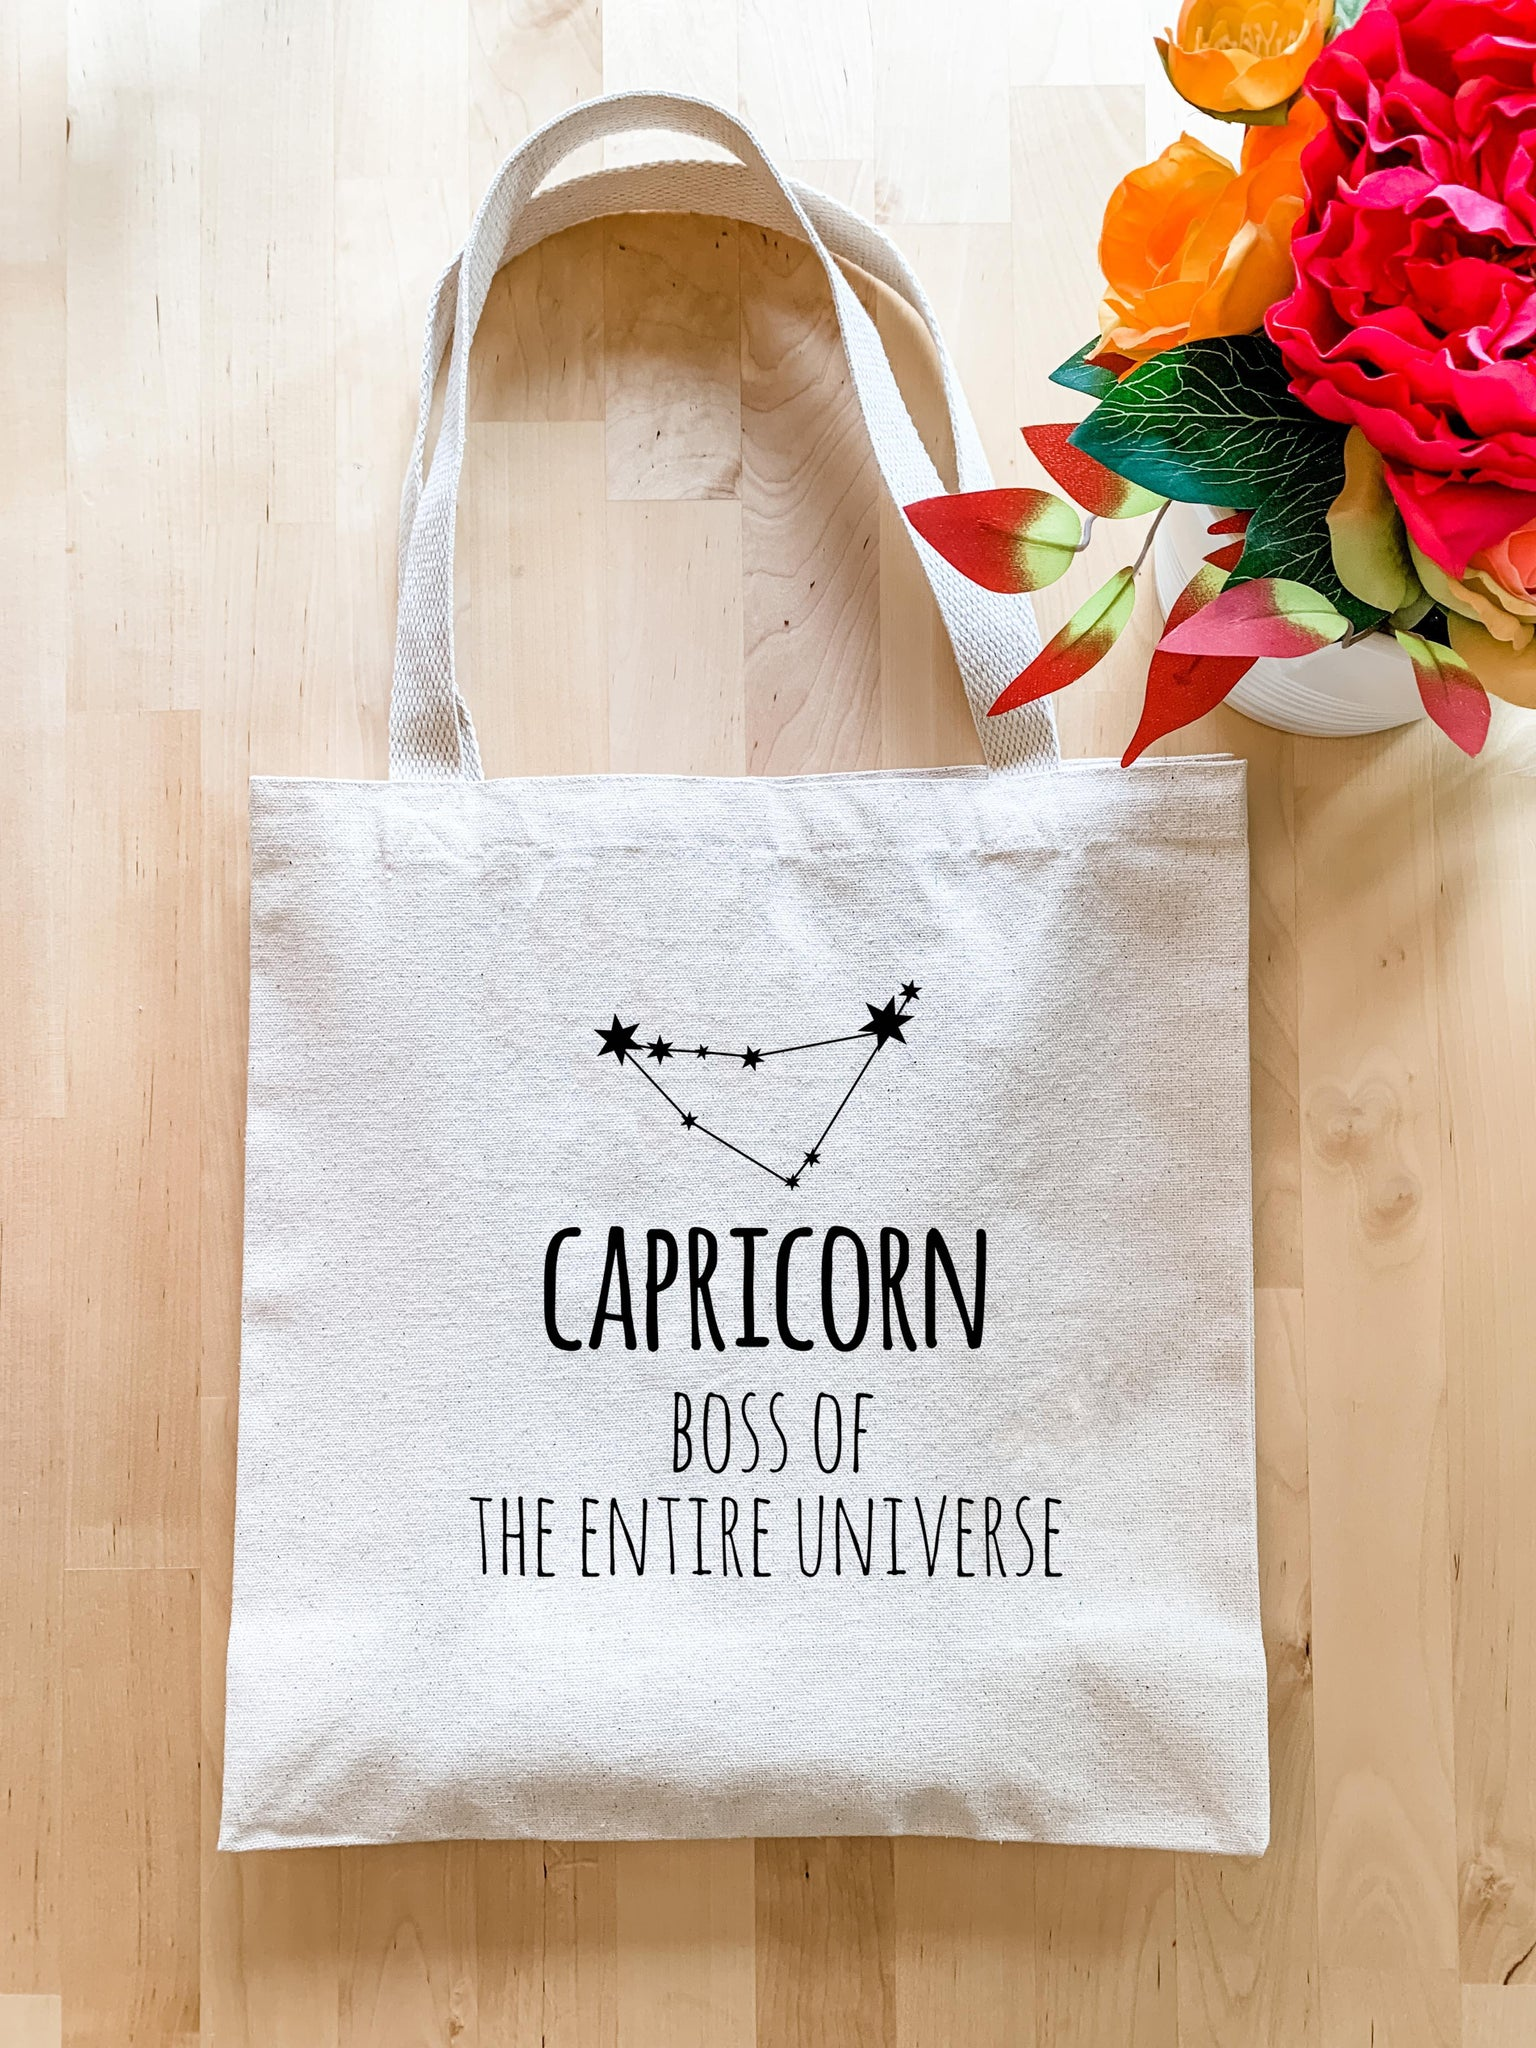 Capricorn Zodiac (Boss of the Entire Universe) - Tote Bag - MoonlightMakers